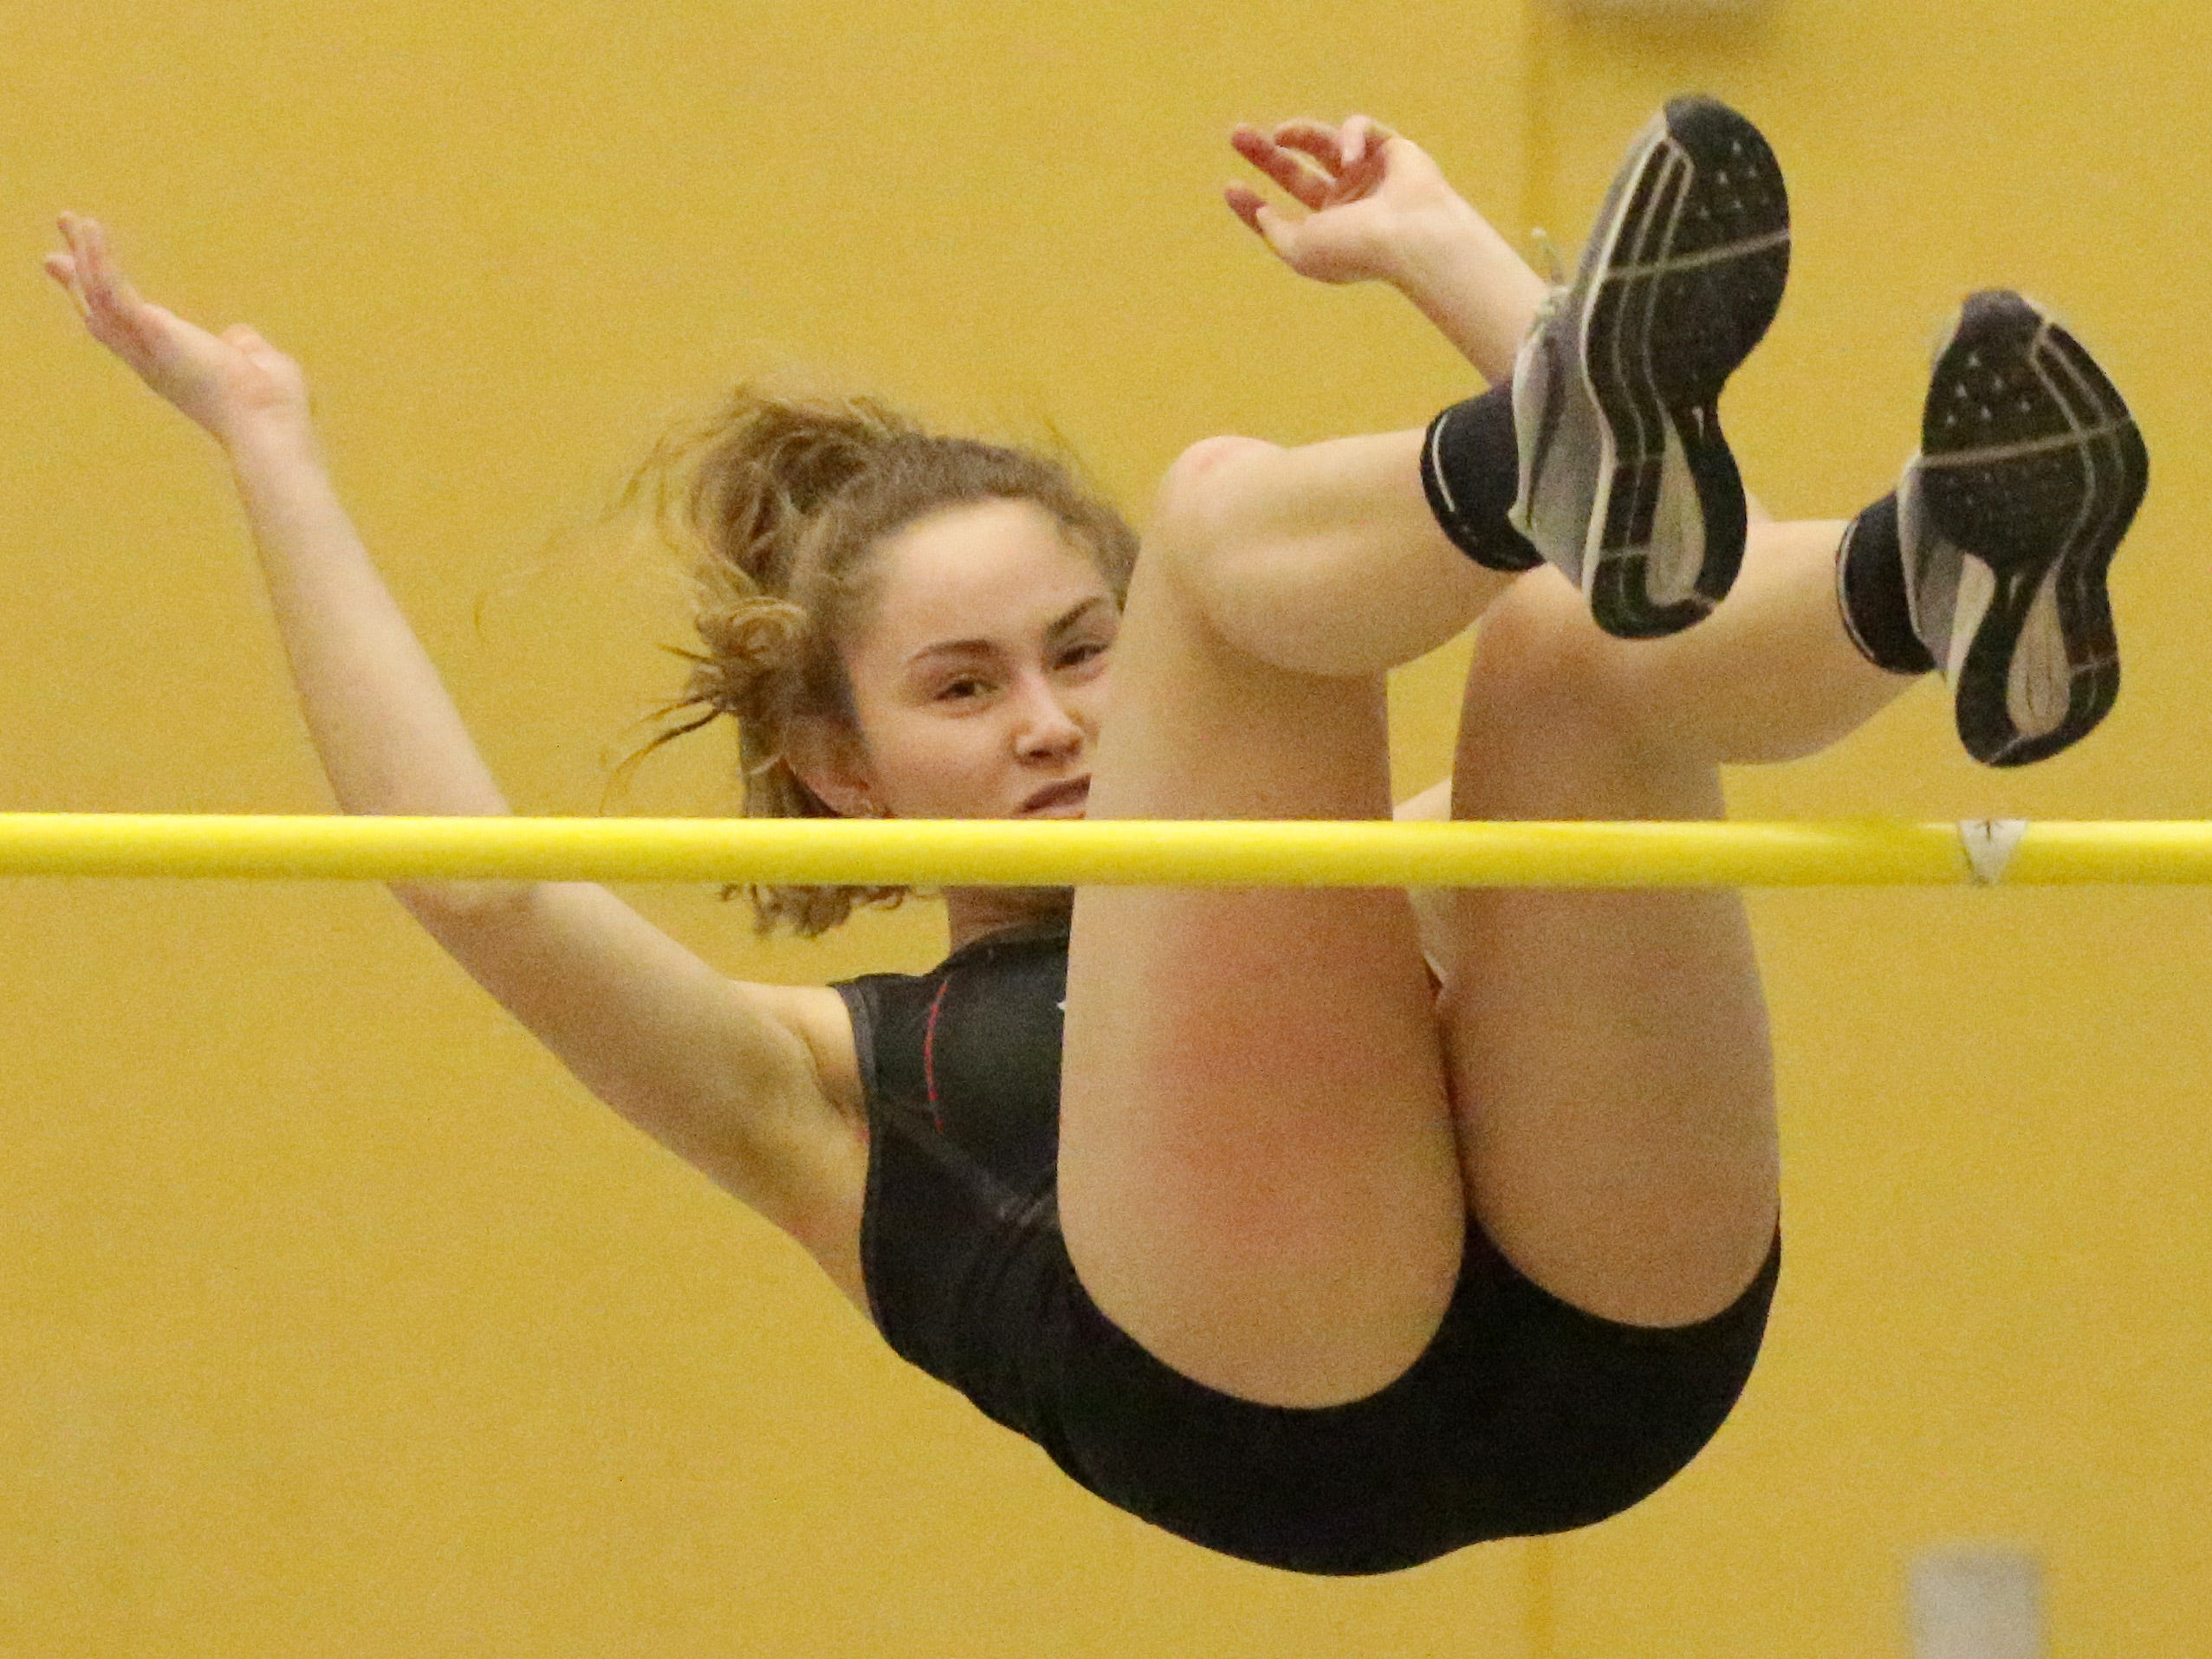 Manitowoc's Lauren Borchardt clears the bar during the Sheboygan North Invite track meet, Tuesday, April 2, 2019, in Sheboygan, Wis.